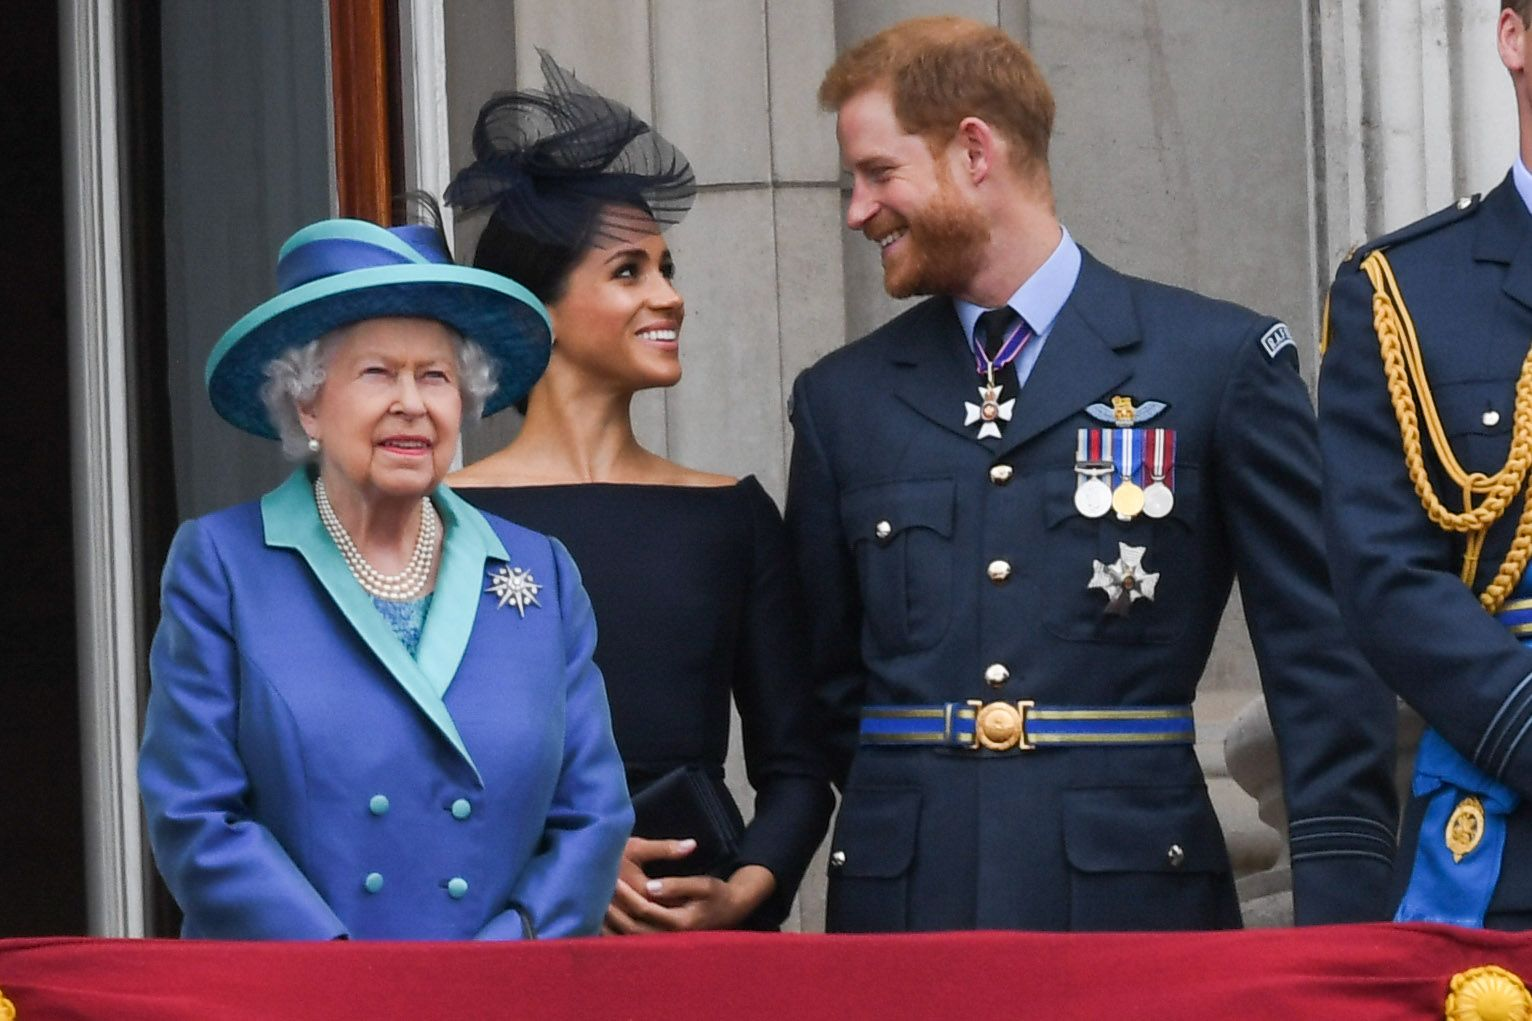 Why Meghan Markle and Prince Harry Didn't Visit the Queen at Balmoral Castle This Summer